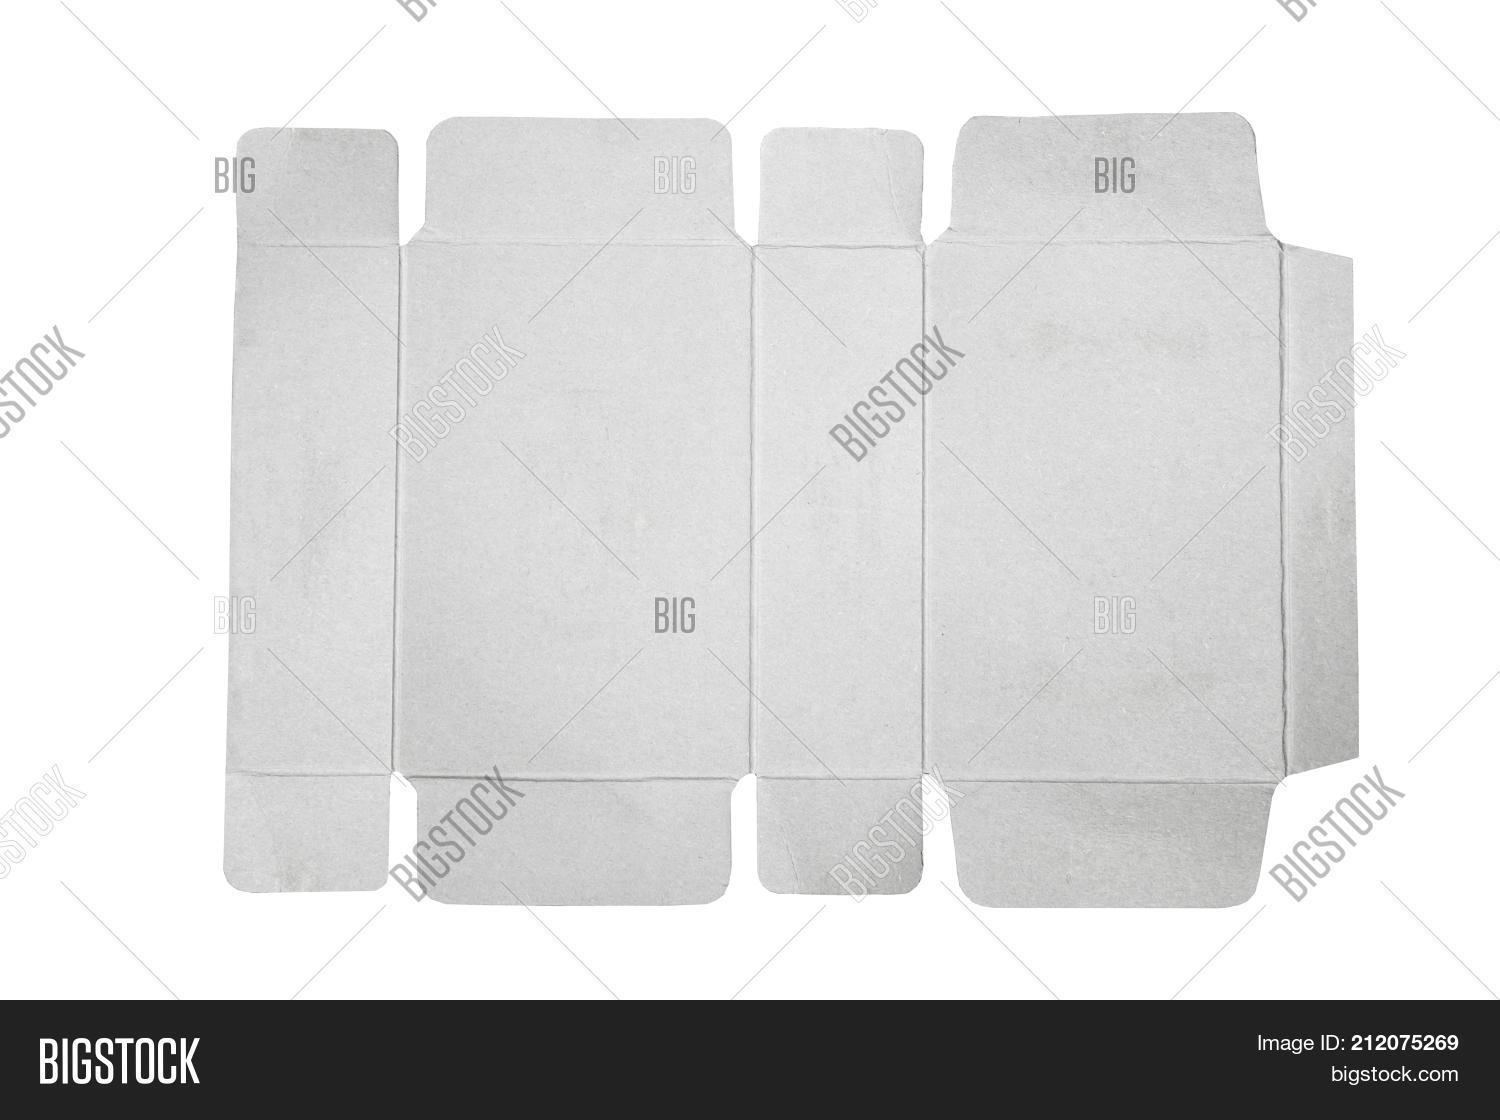 Mockup blueprint template paper box image photo bigstock mockup blueprint template of paper box packaging old cardboard with die cut pattern malvernweather Choice Image